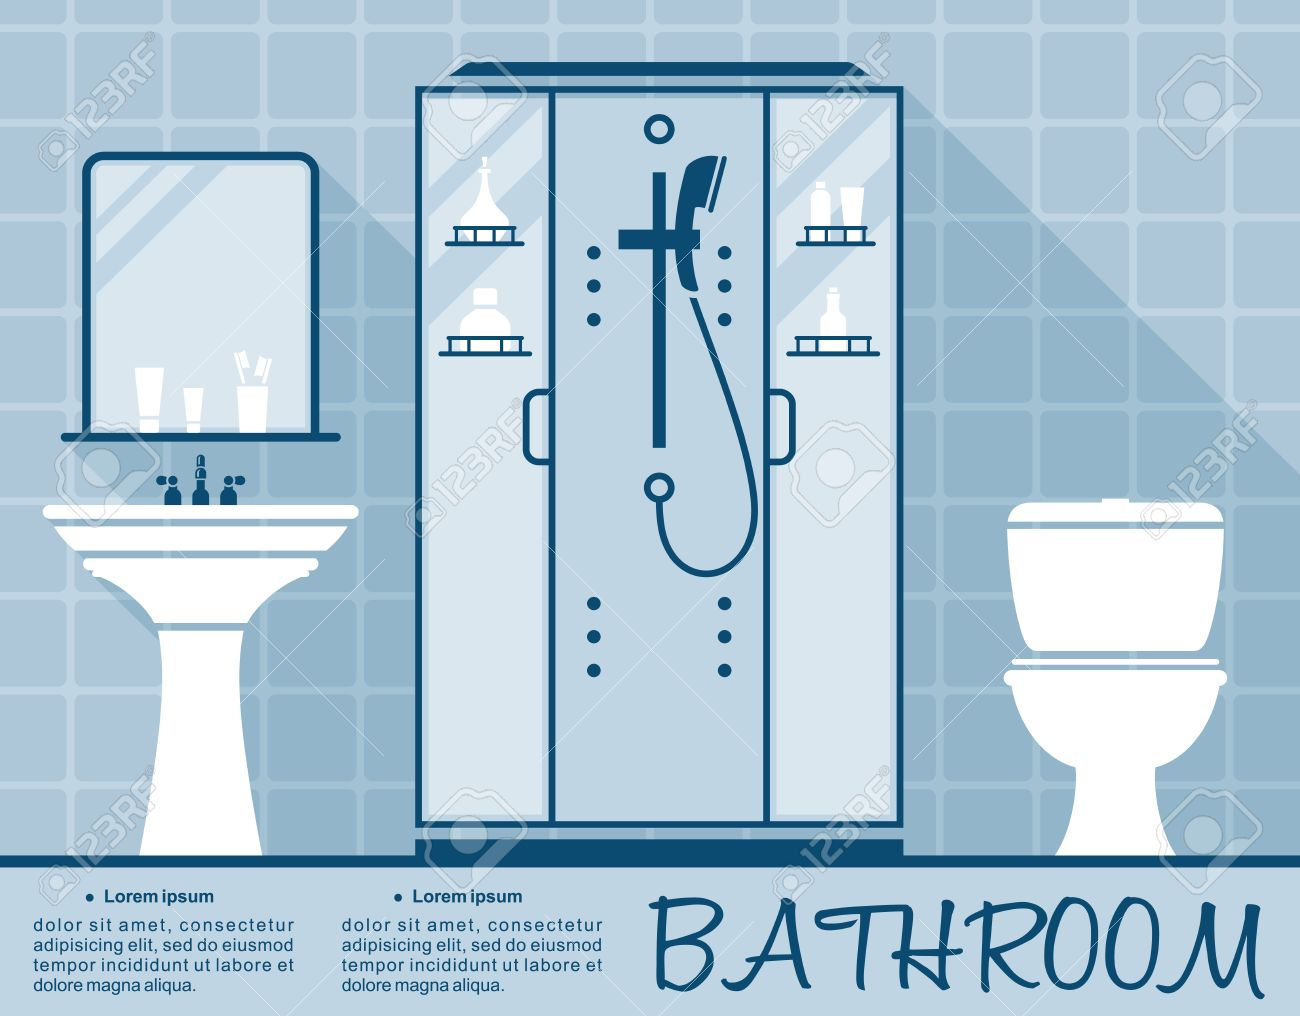 bathroom design infographic template in flat style in shades of blue of a bathroom interior with - Bathroom Design Template